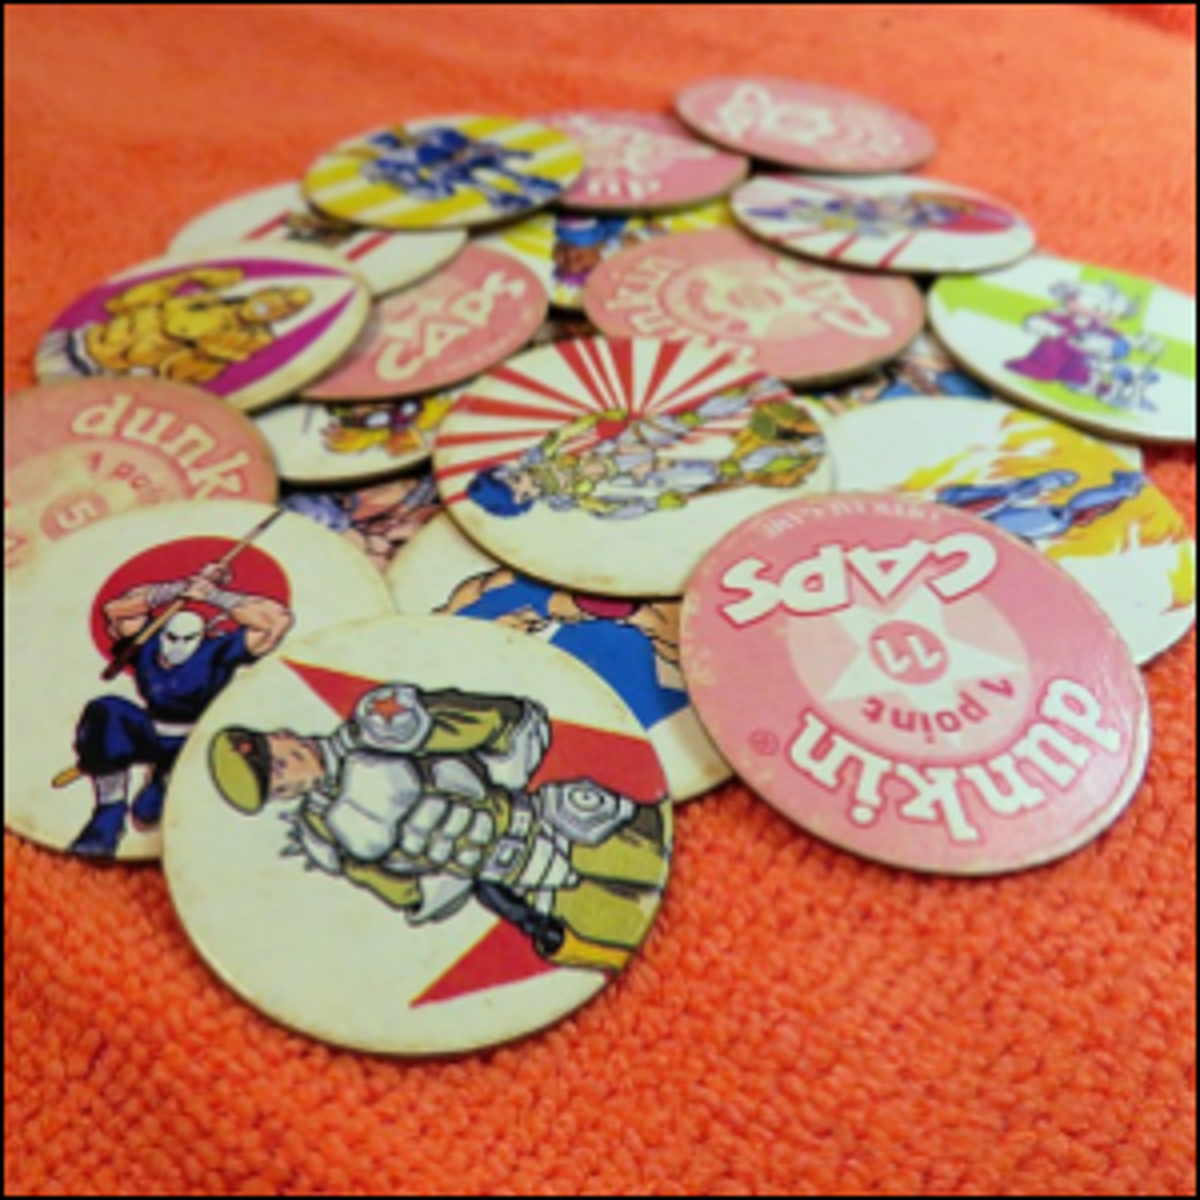 A handful of Pogs, spread out across a floor rug.